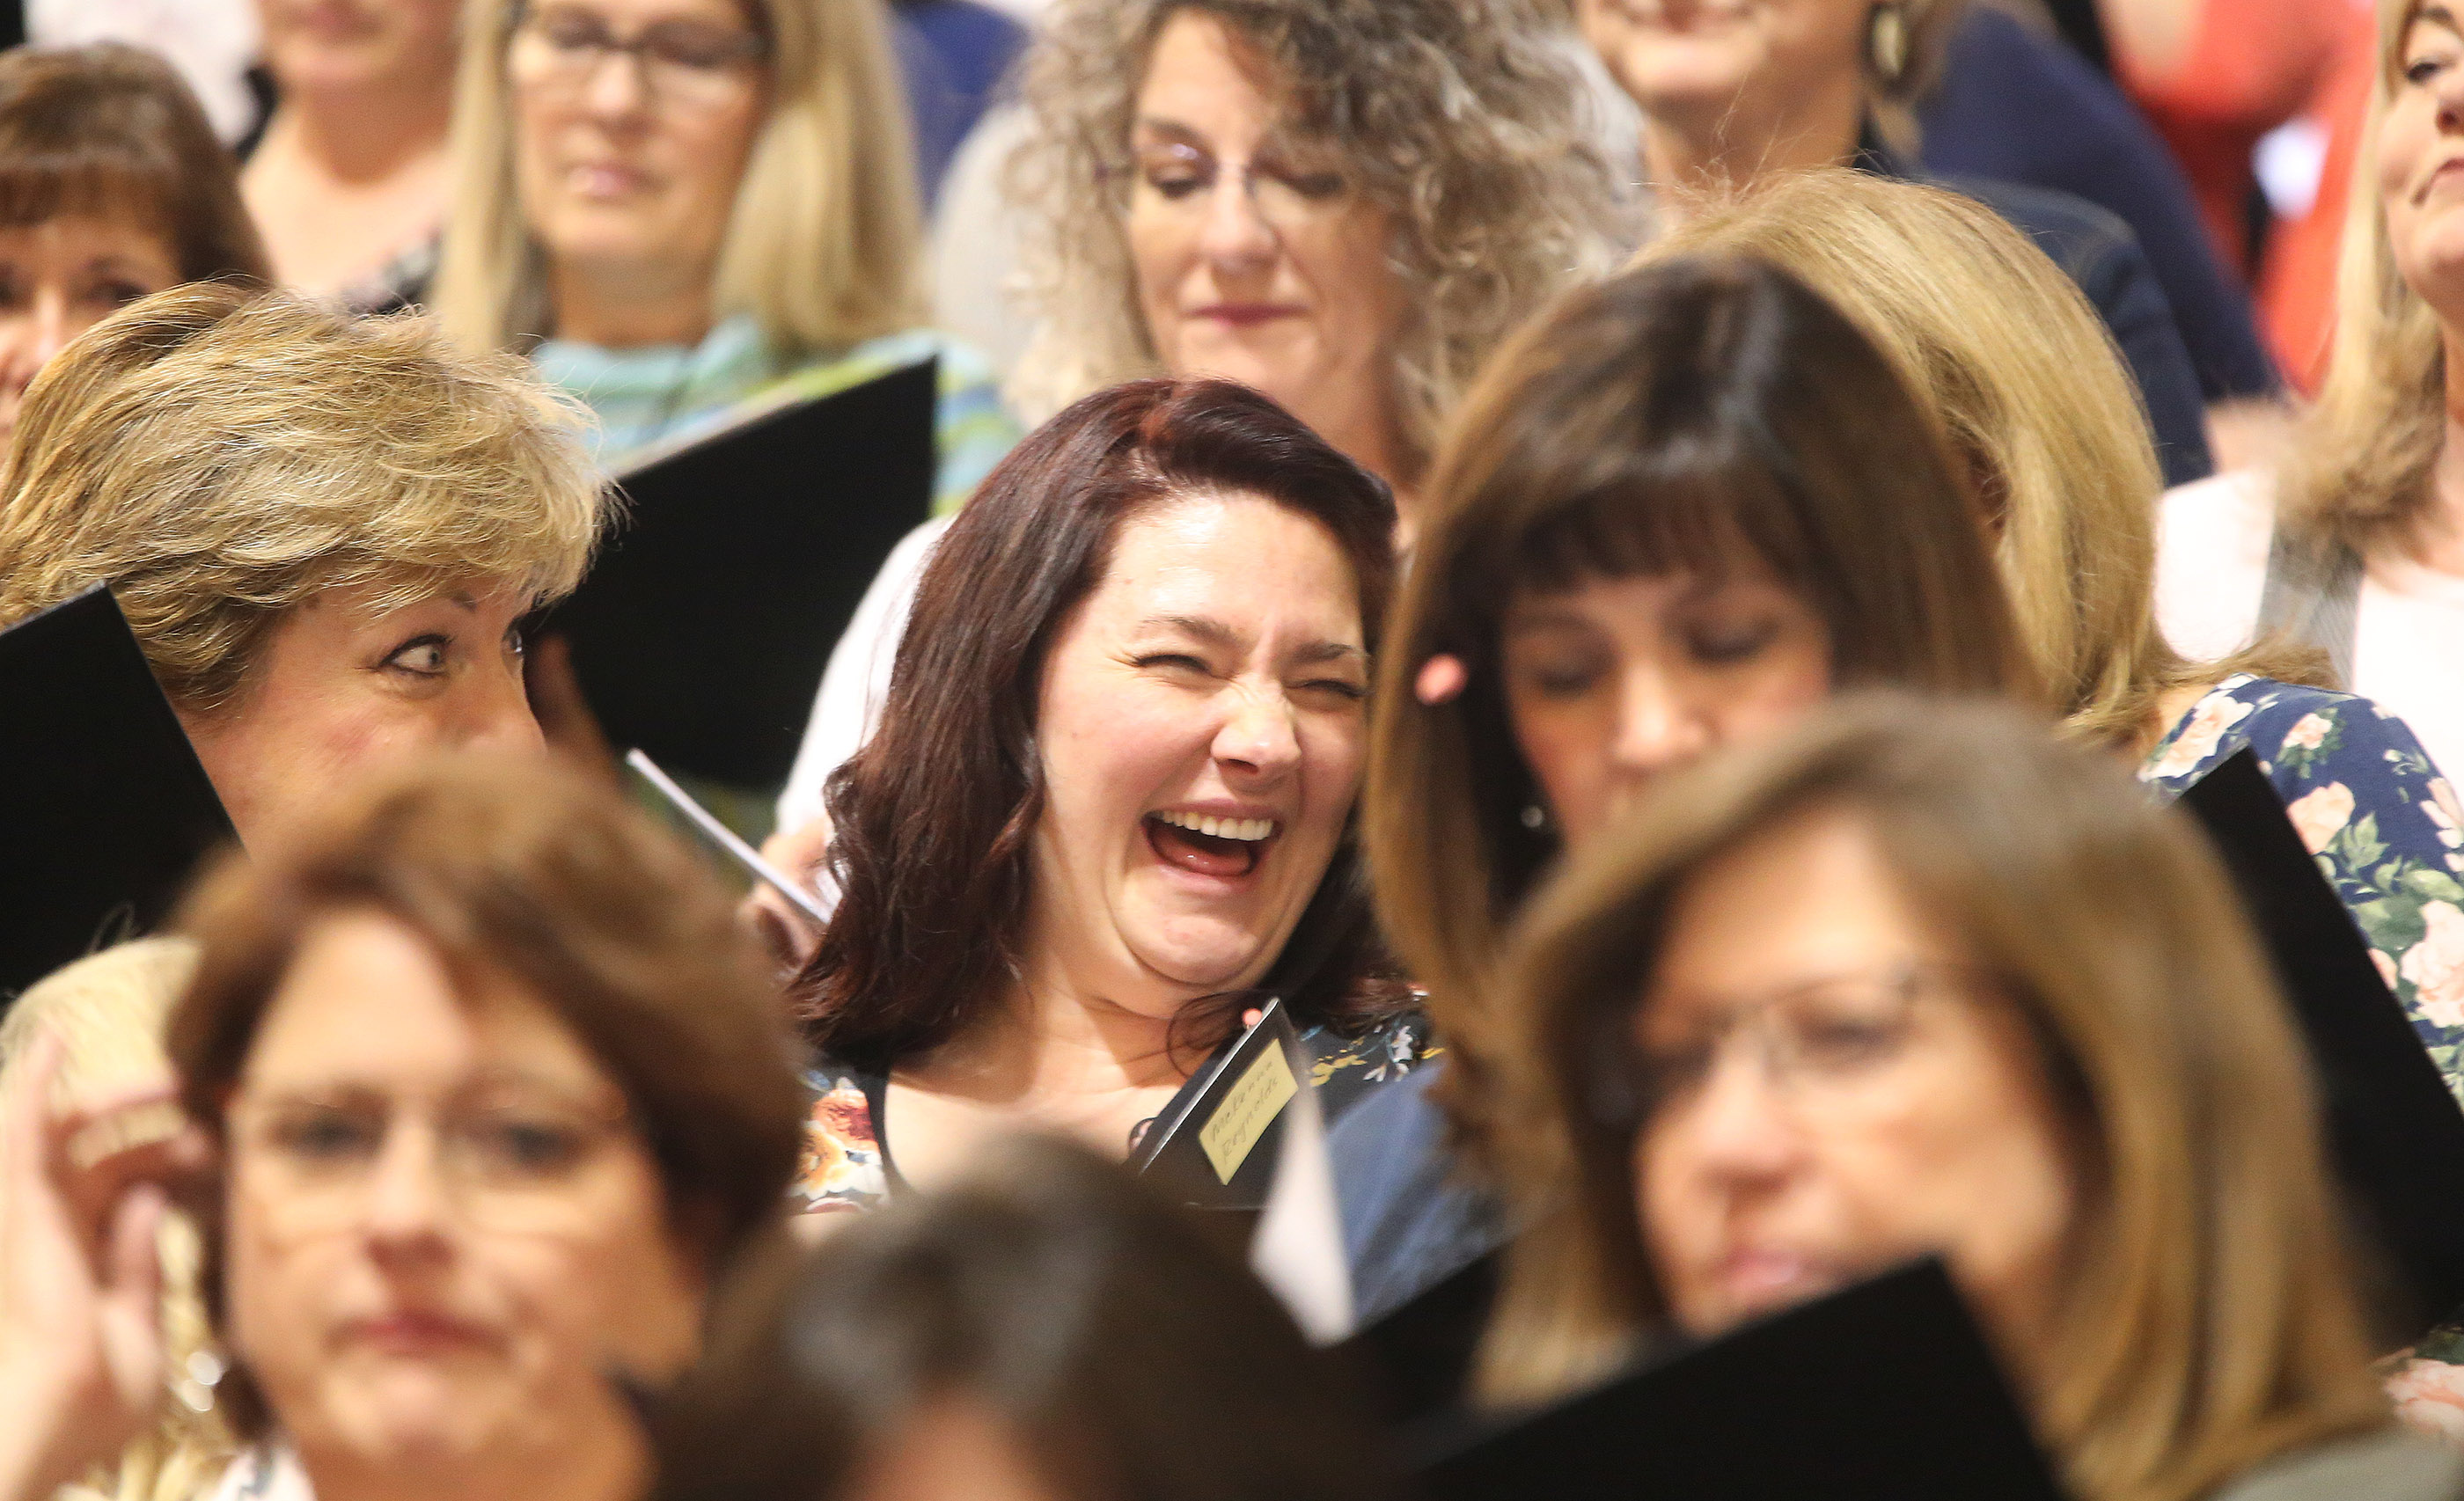 McKenna Reynolds laughs while rehearsing with The Tabernacle Choir at Temple Square during a rehearsal in Salt Lake City on Thursday, April 11, 2019. Four people were selected through social media to sing with the choir.